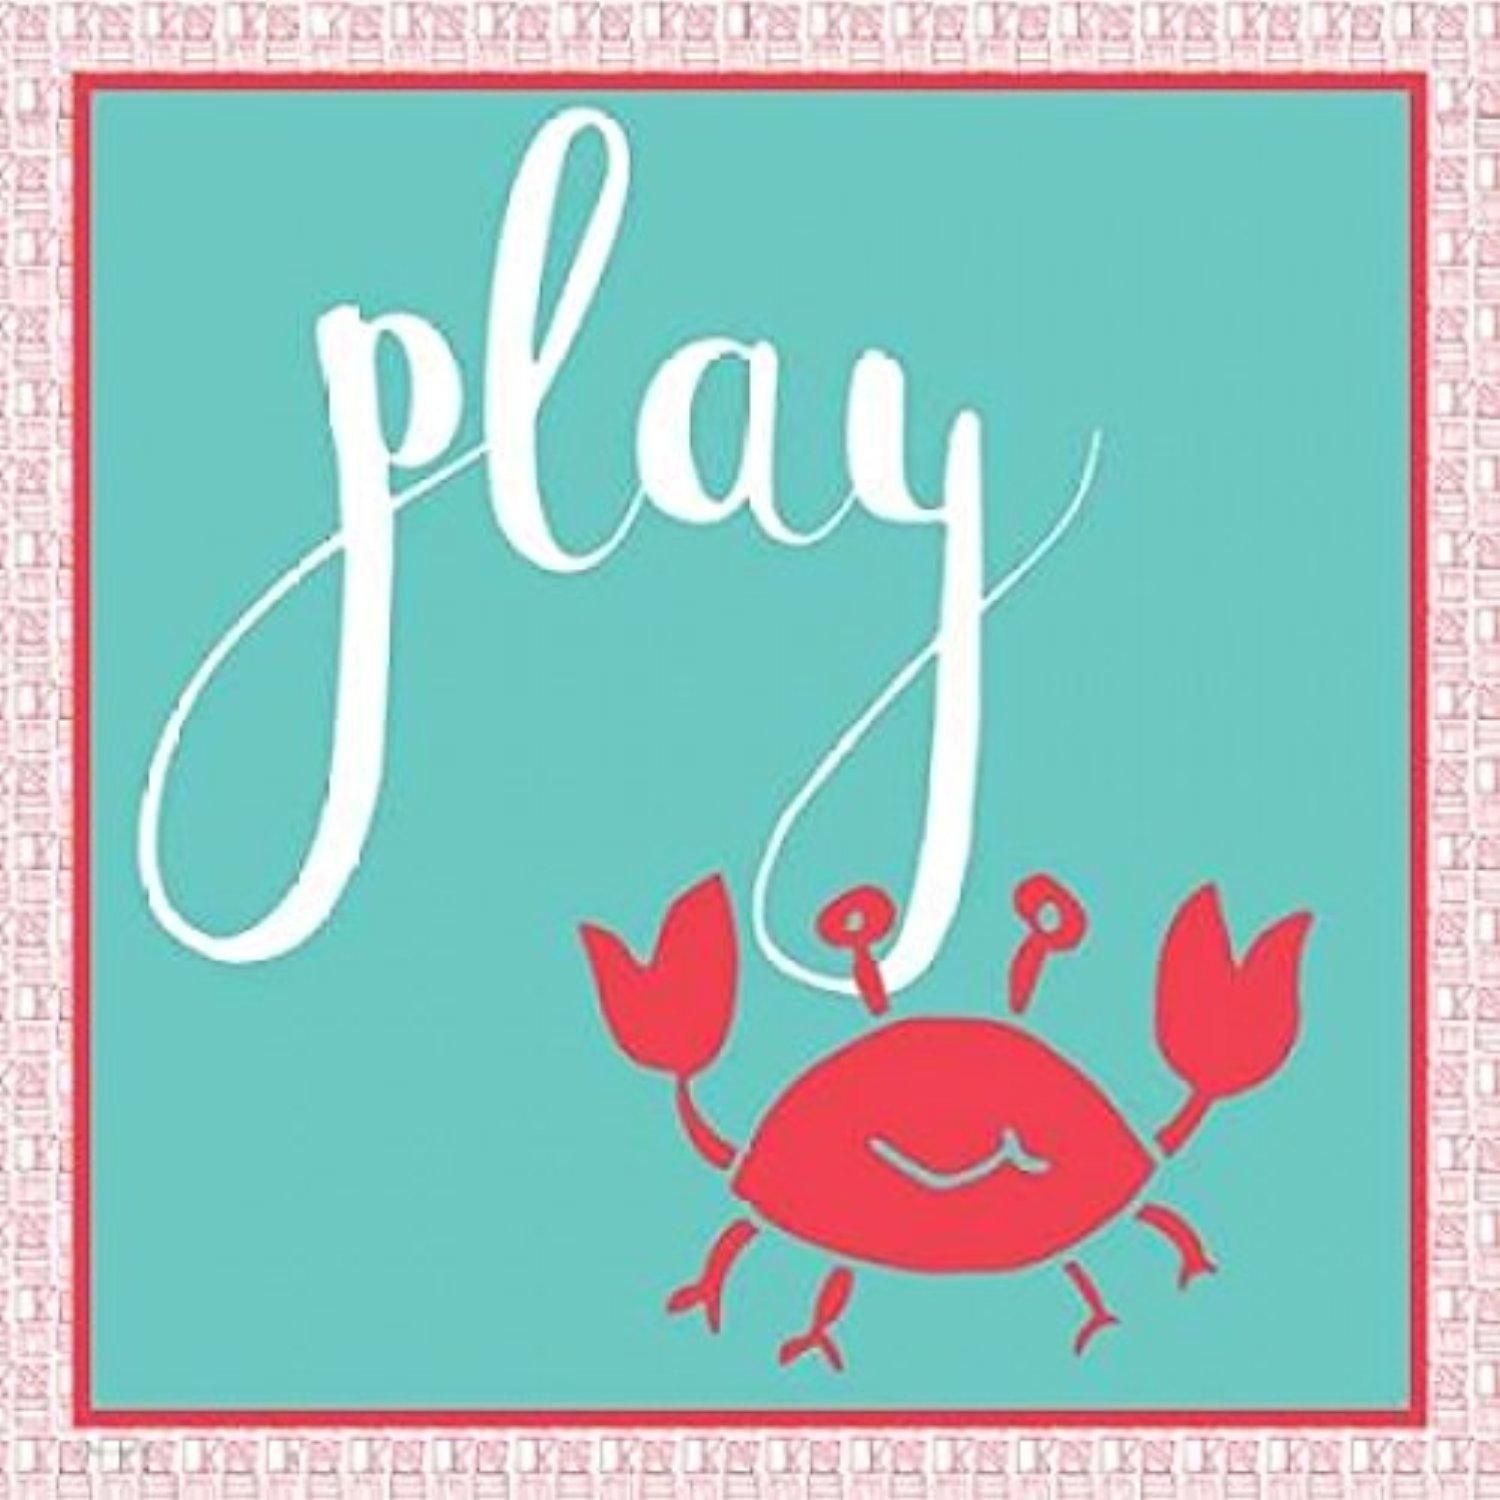 Play Crab Poster Print by Pamela J. Wingard (12 x 12) - Brought to you by Avarsha.com